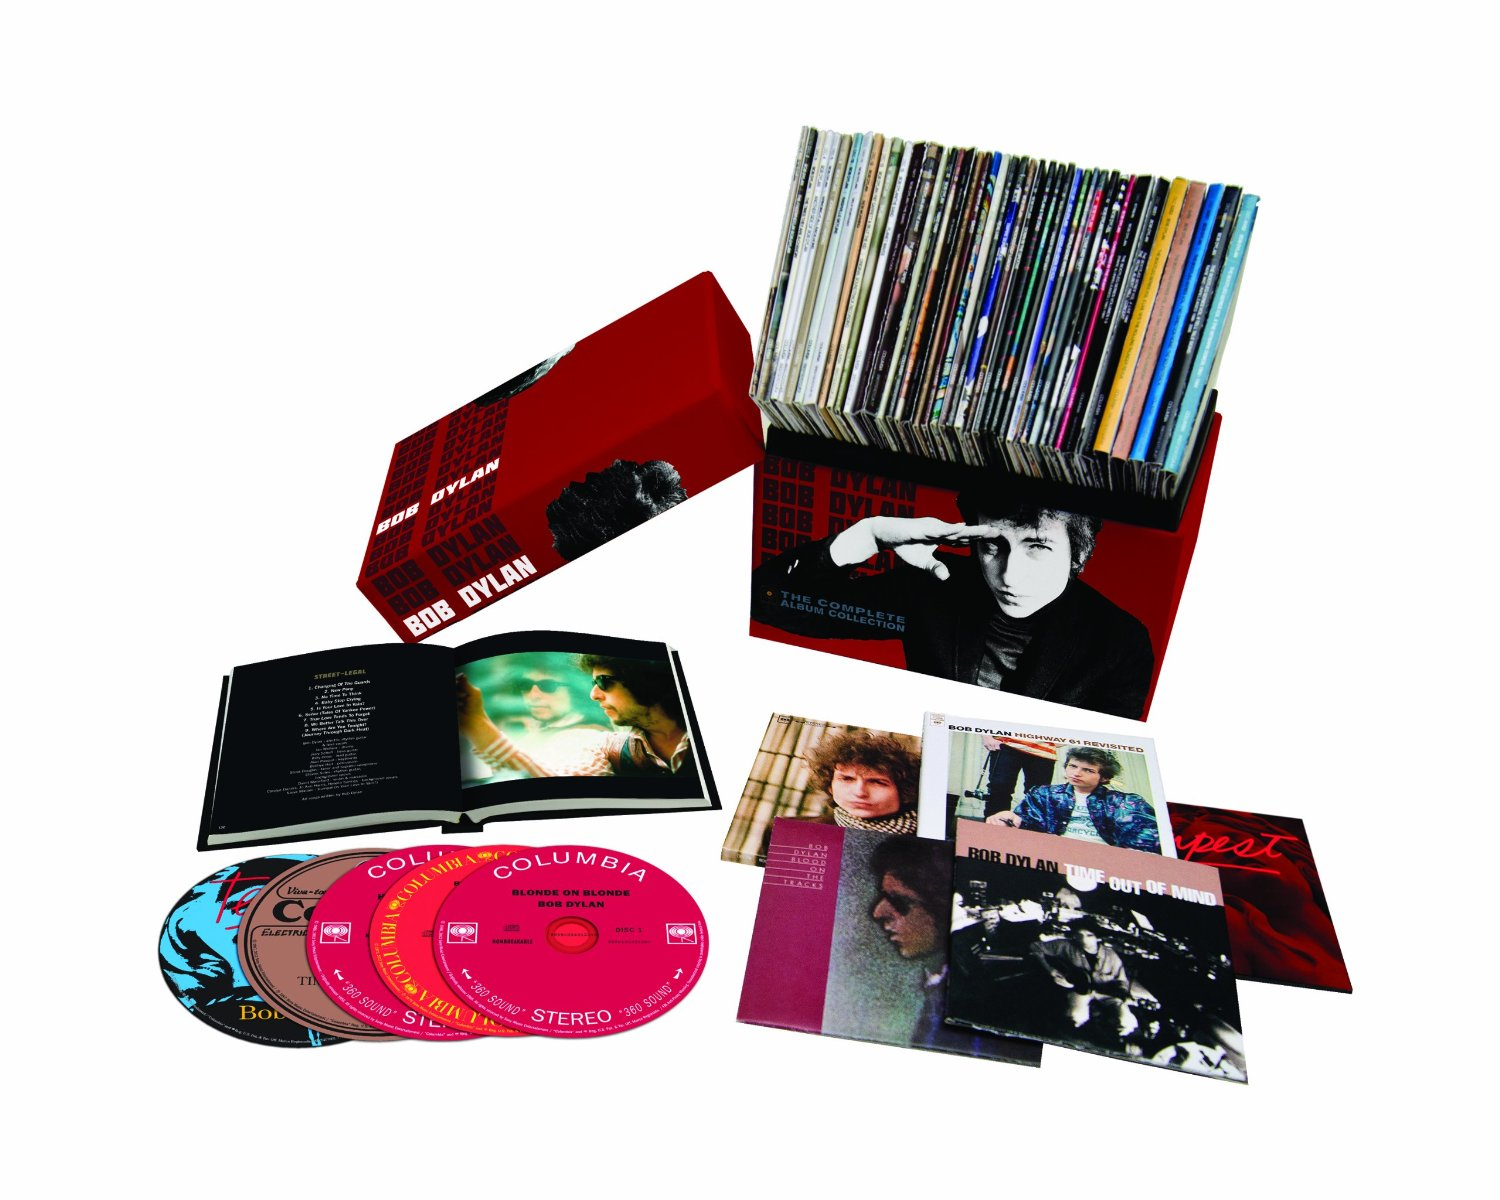 Bob Dylan / The Complete Album Collection: 47 CD box set